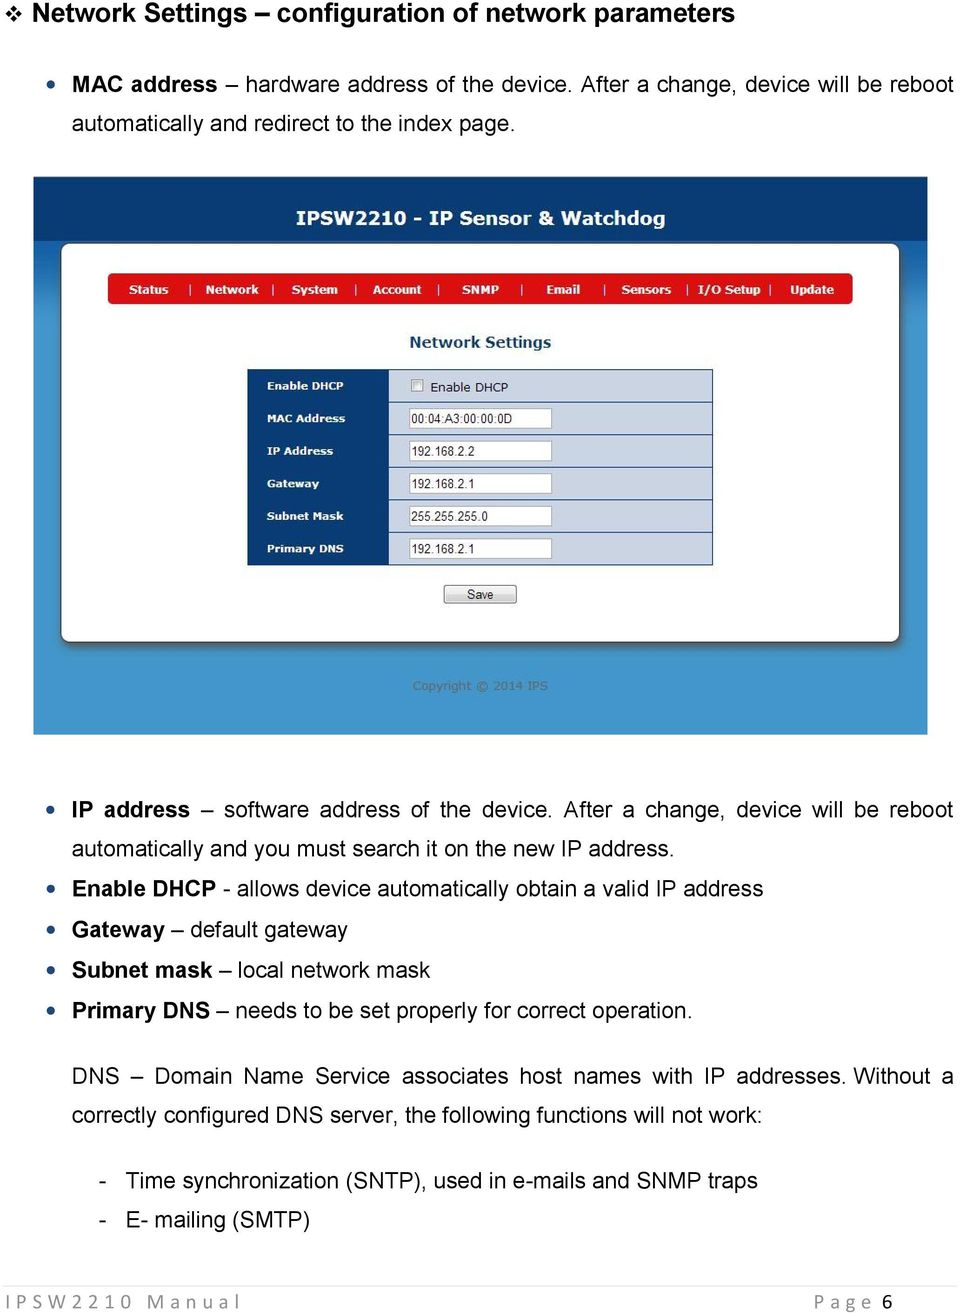 Enable DHCP - allows device automatically obtain a valid IP address Gateway default gateway Subnet mask local network mask Primary DNS needs to be set properly for correct operation.